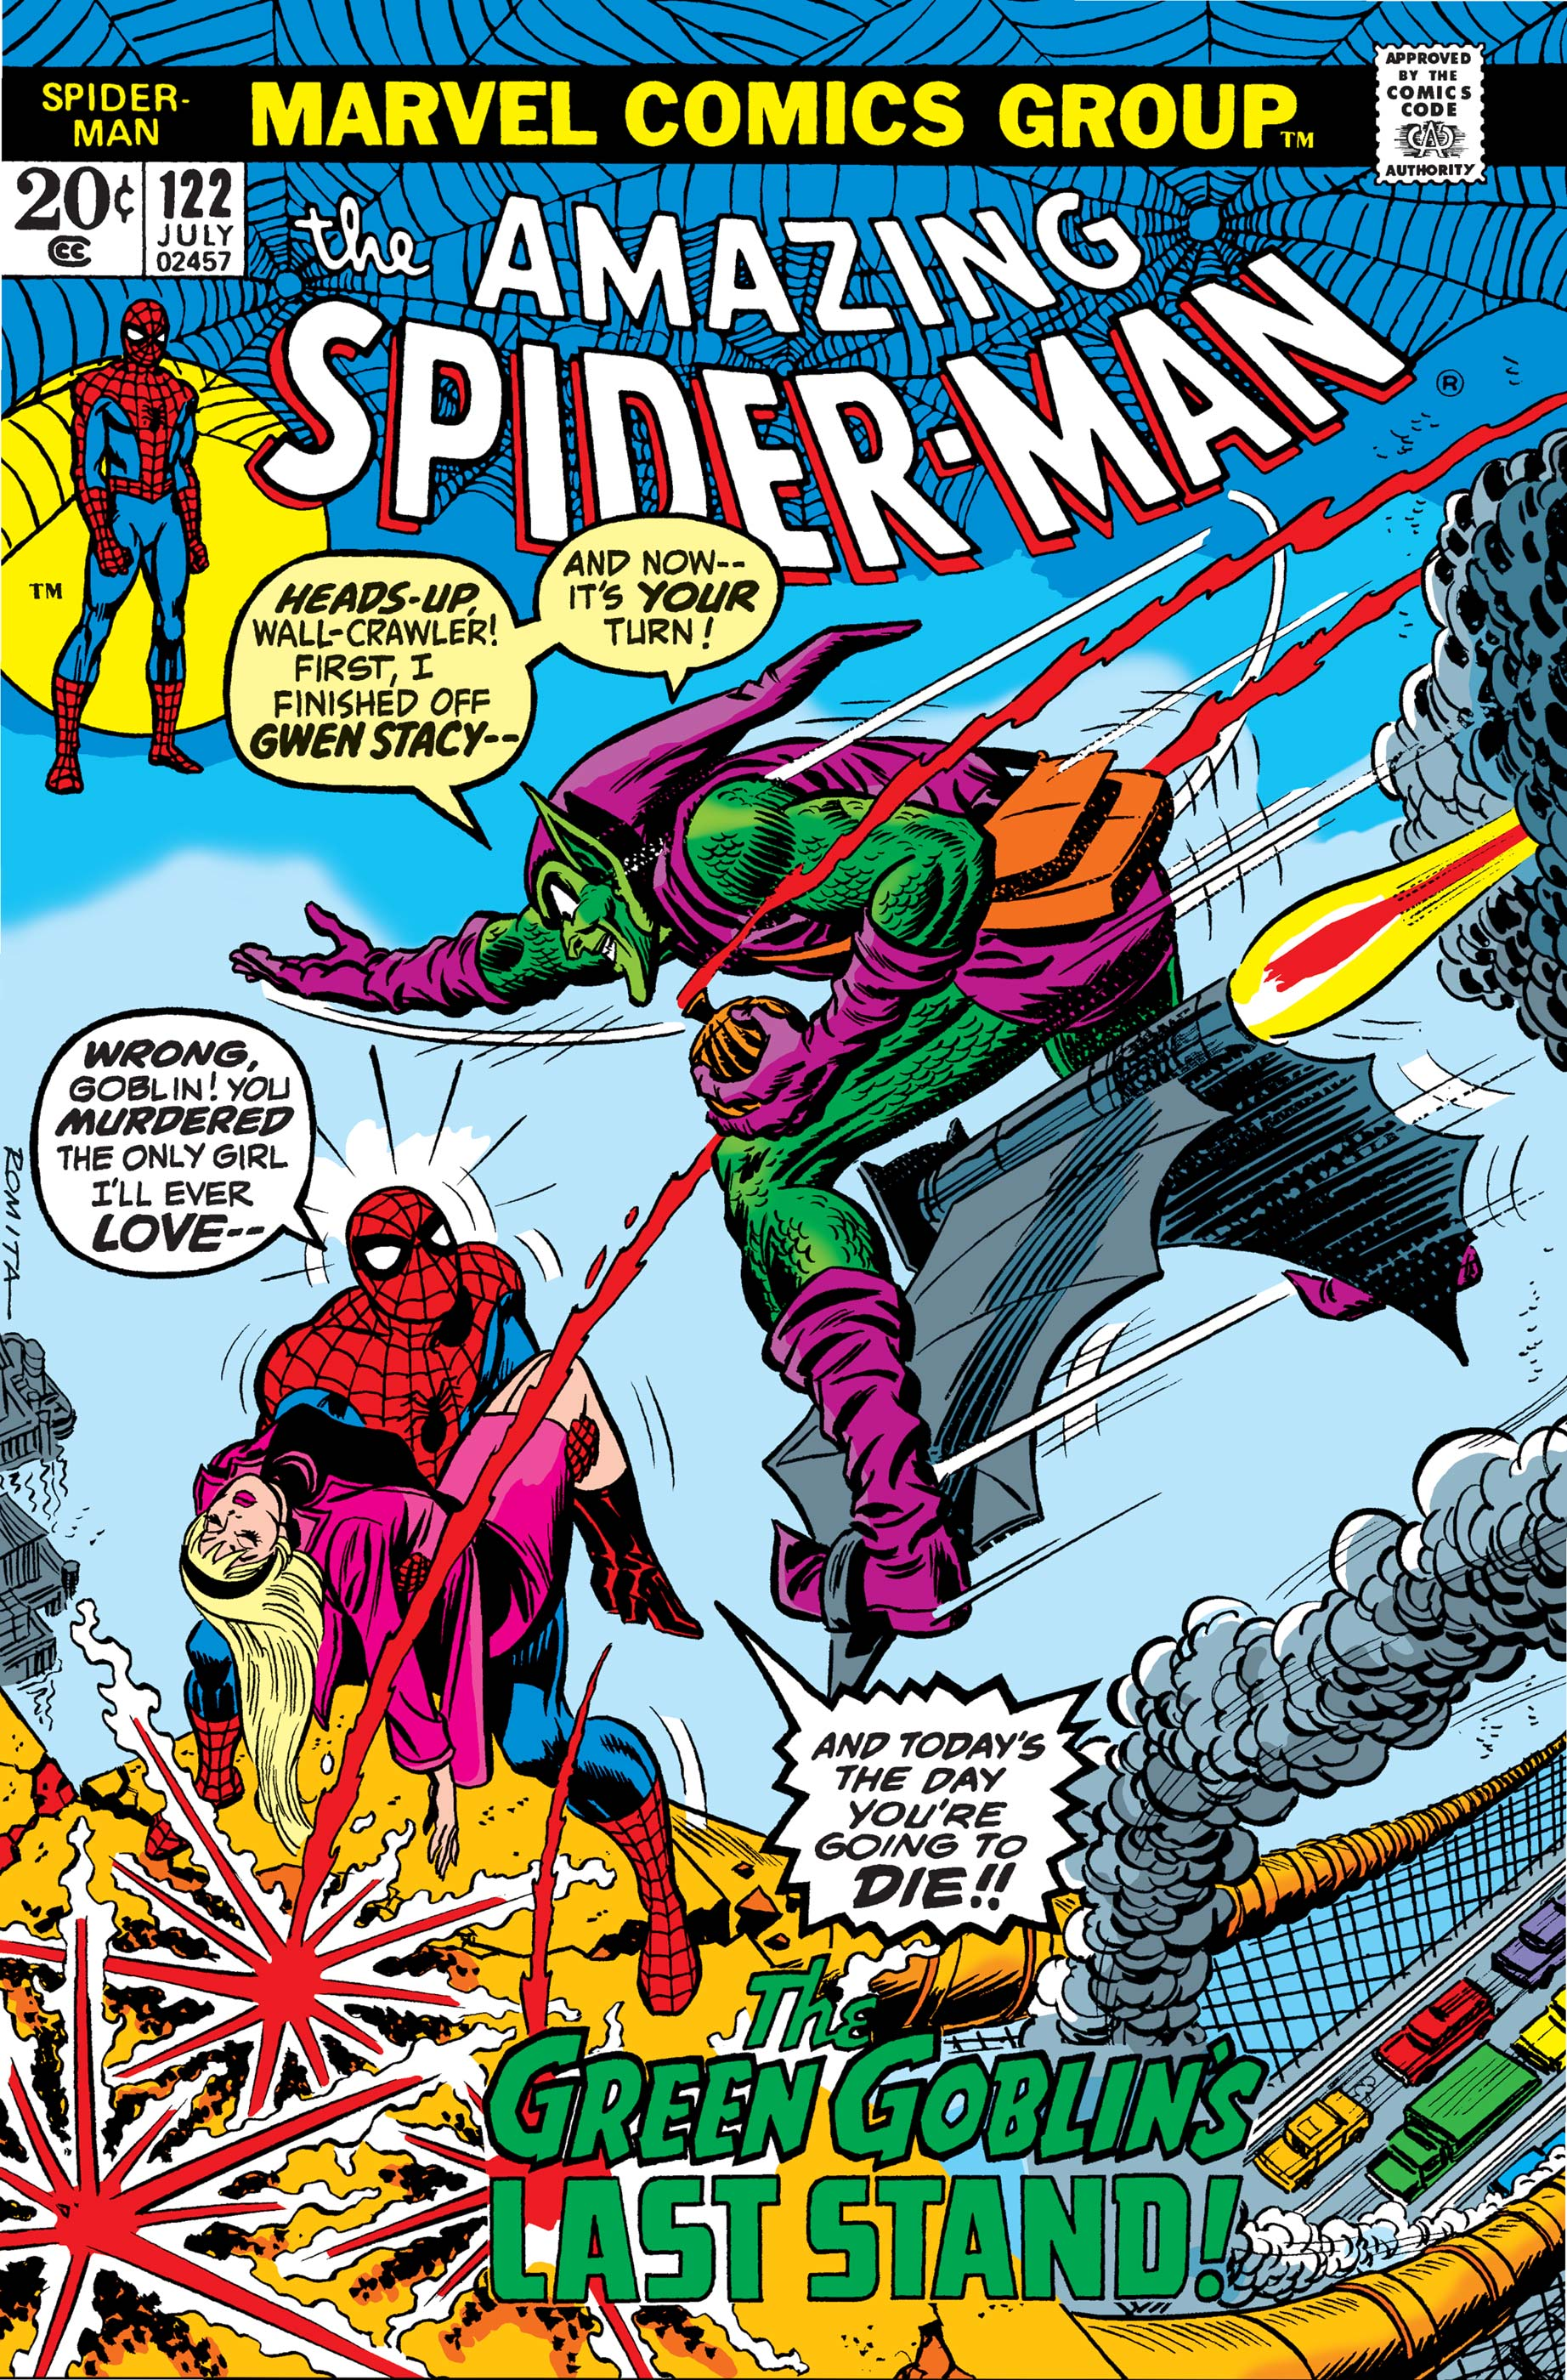 The Amazing Spider-Man (1963) #122